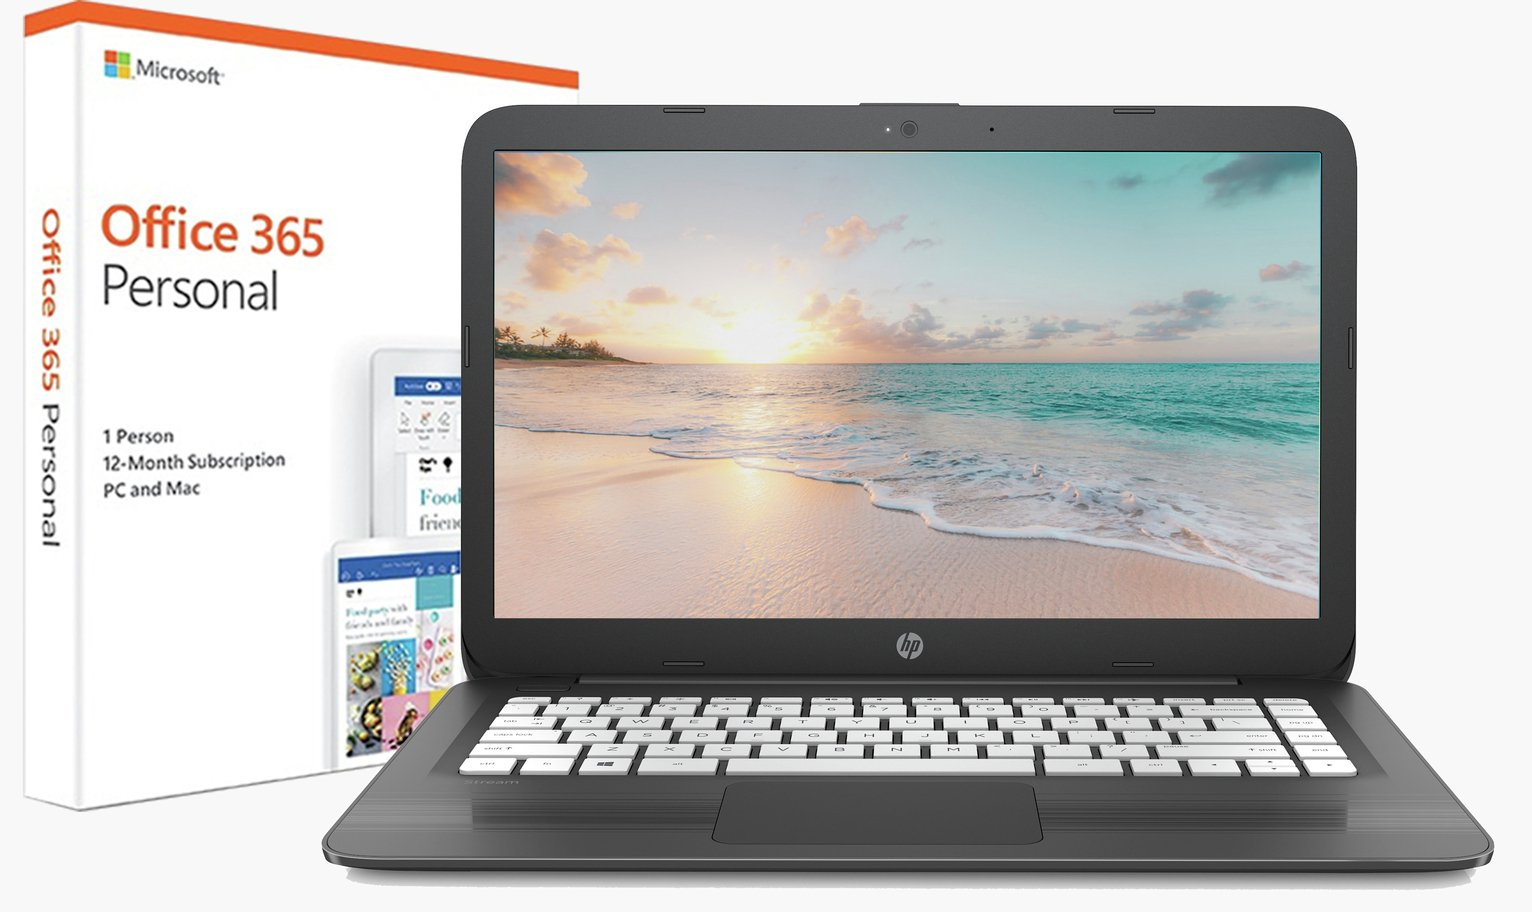 HP 14-cm0981na 14-Inch Laptop - (Grey) (AMD A4-9125, 4 GB RAM, 32 GB eMMC, 1 TB OneDrive and Office 365, 1 Year Subscription Included, Windows 10 Home) Best Price and Cheapest